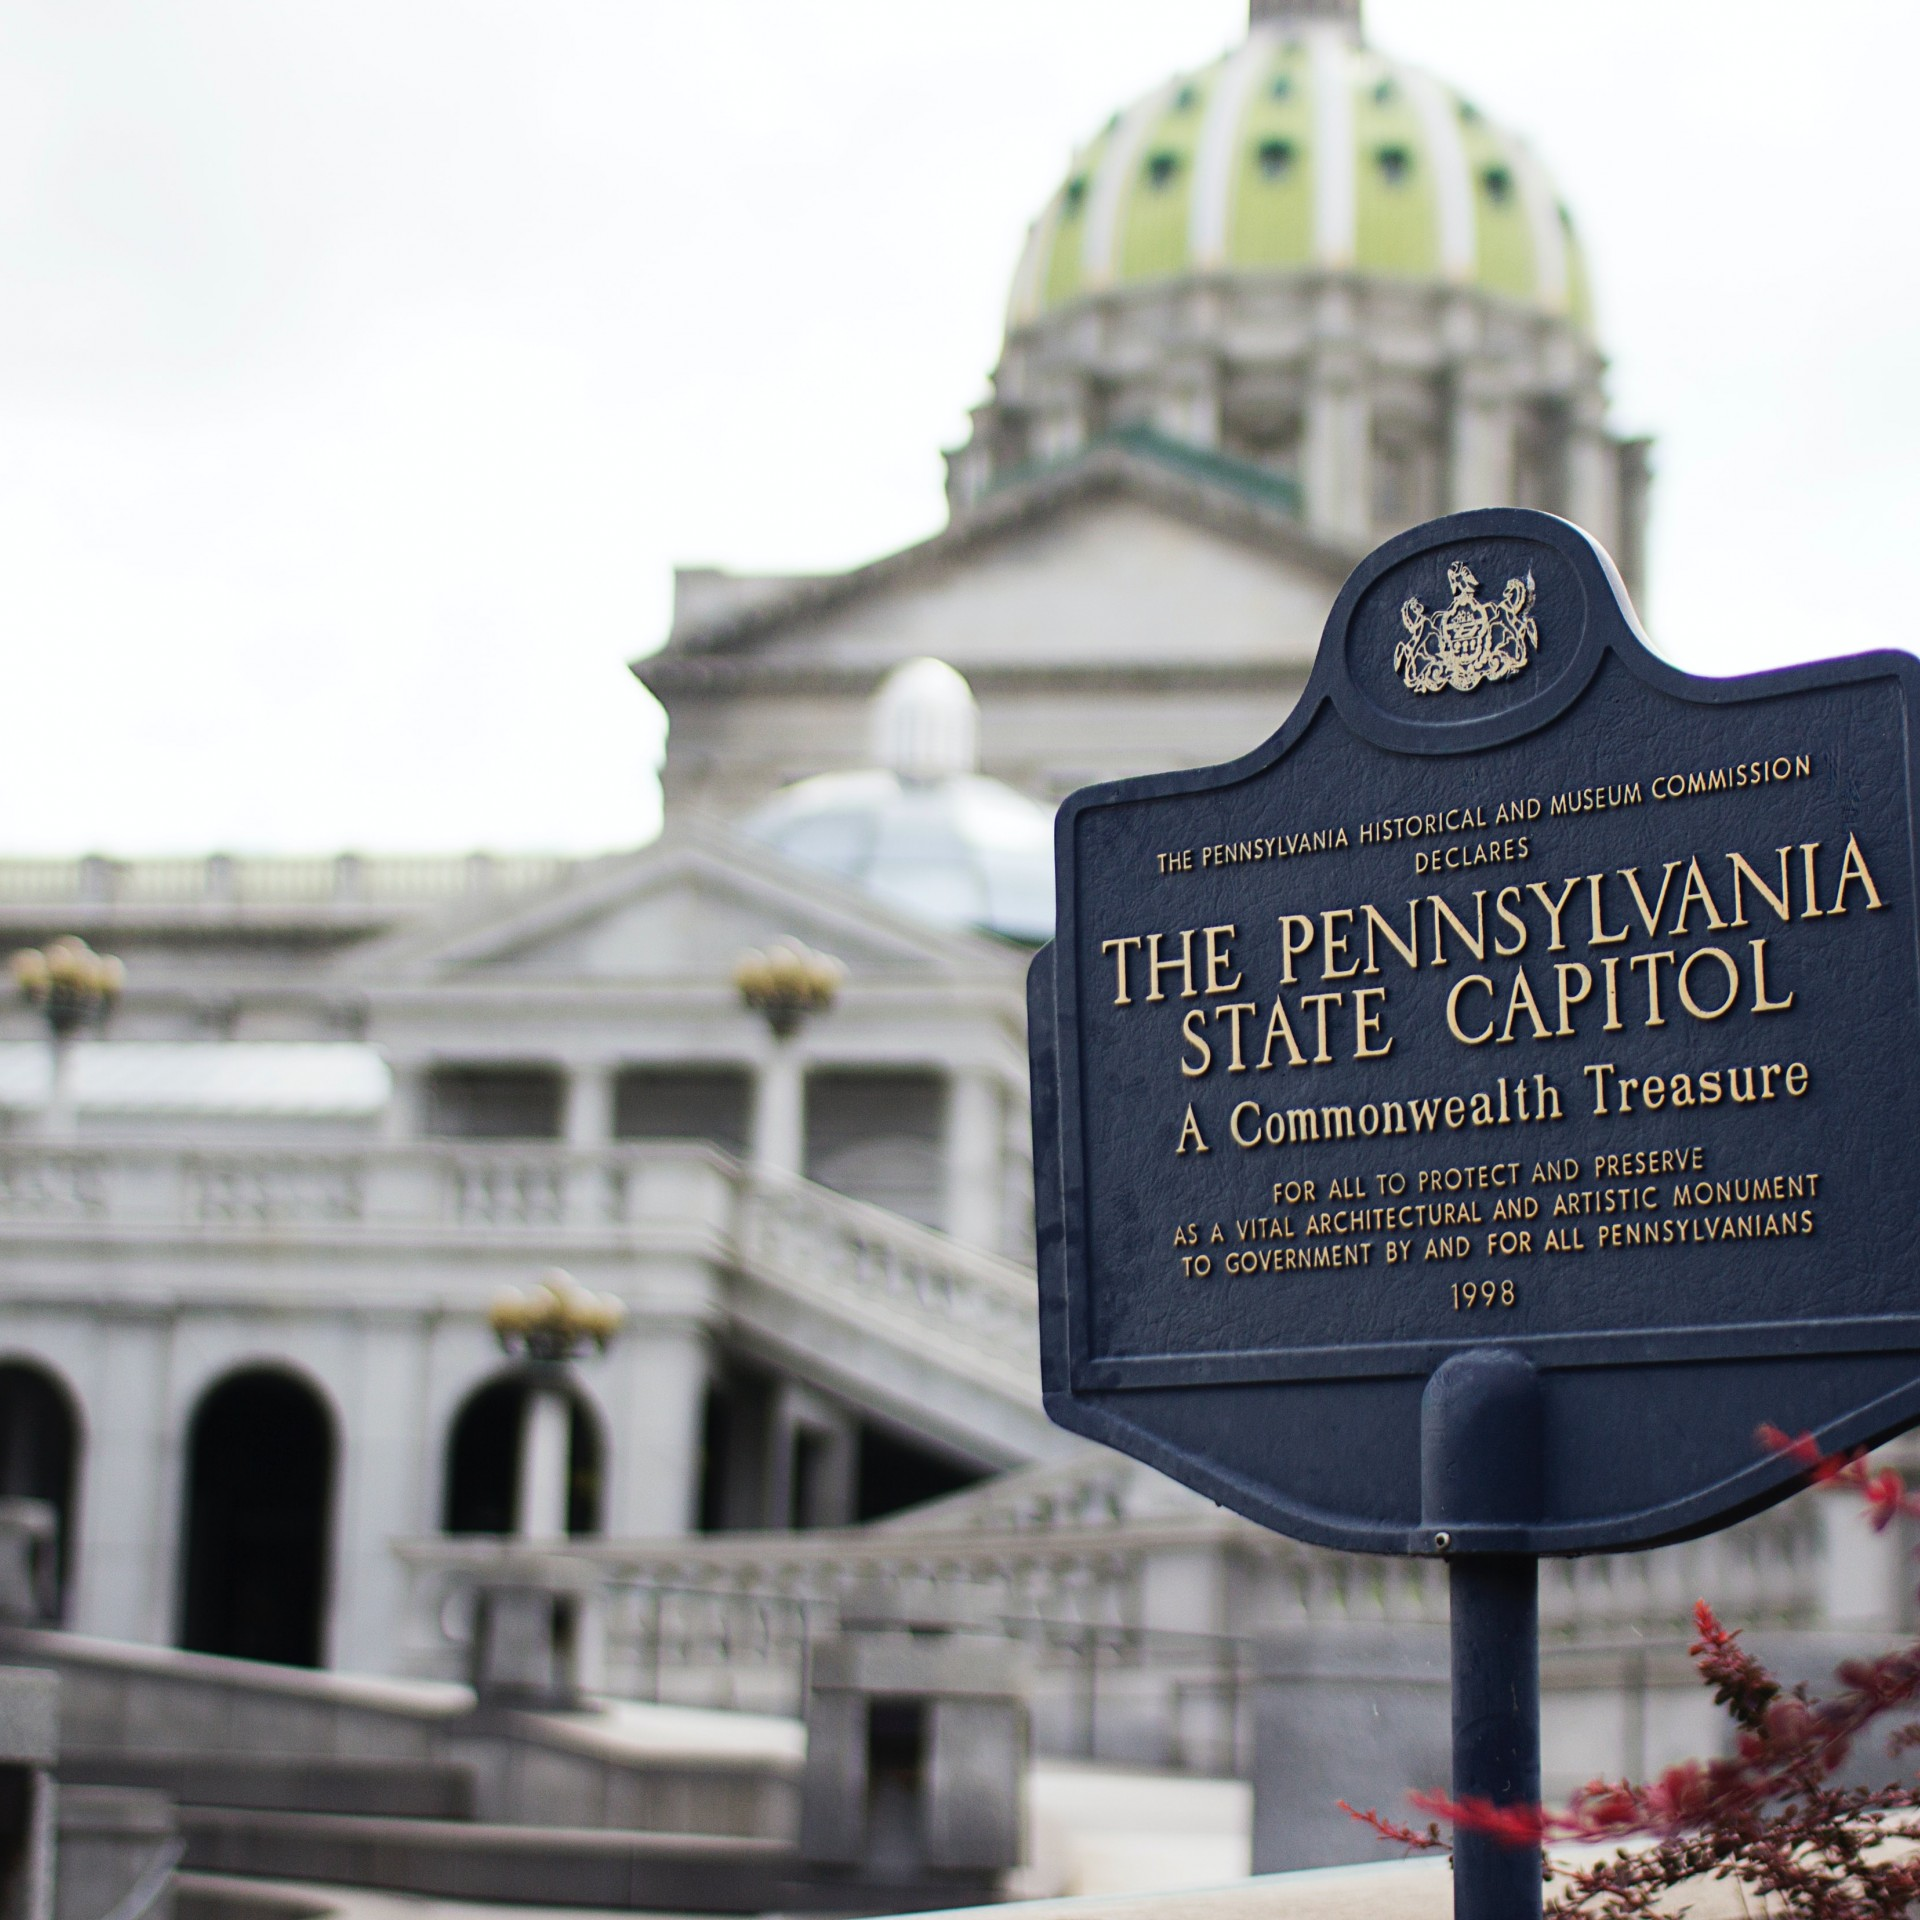 Exterior image of the Pennsylvania State Captial and a sign announing the building in foreground